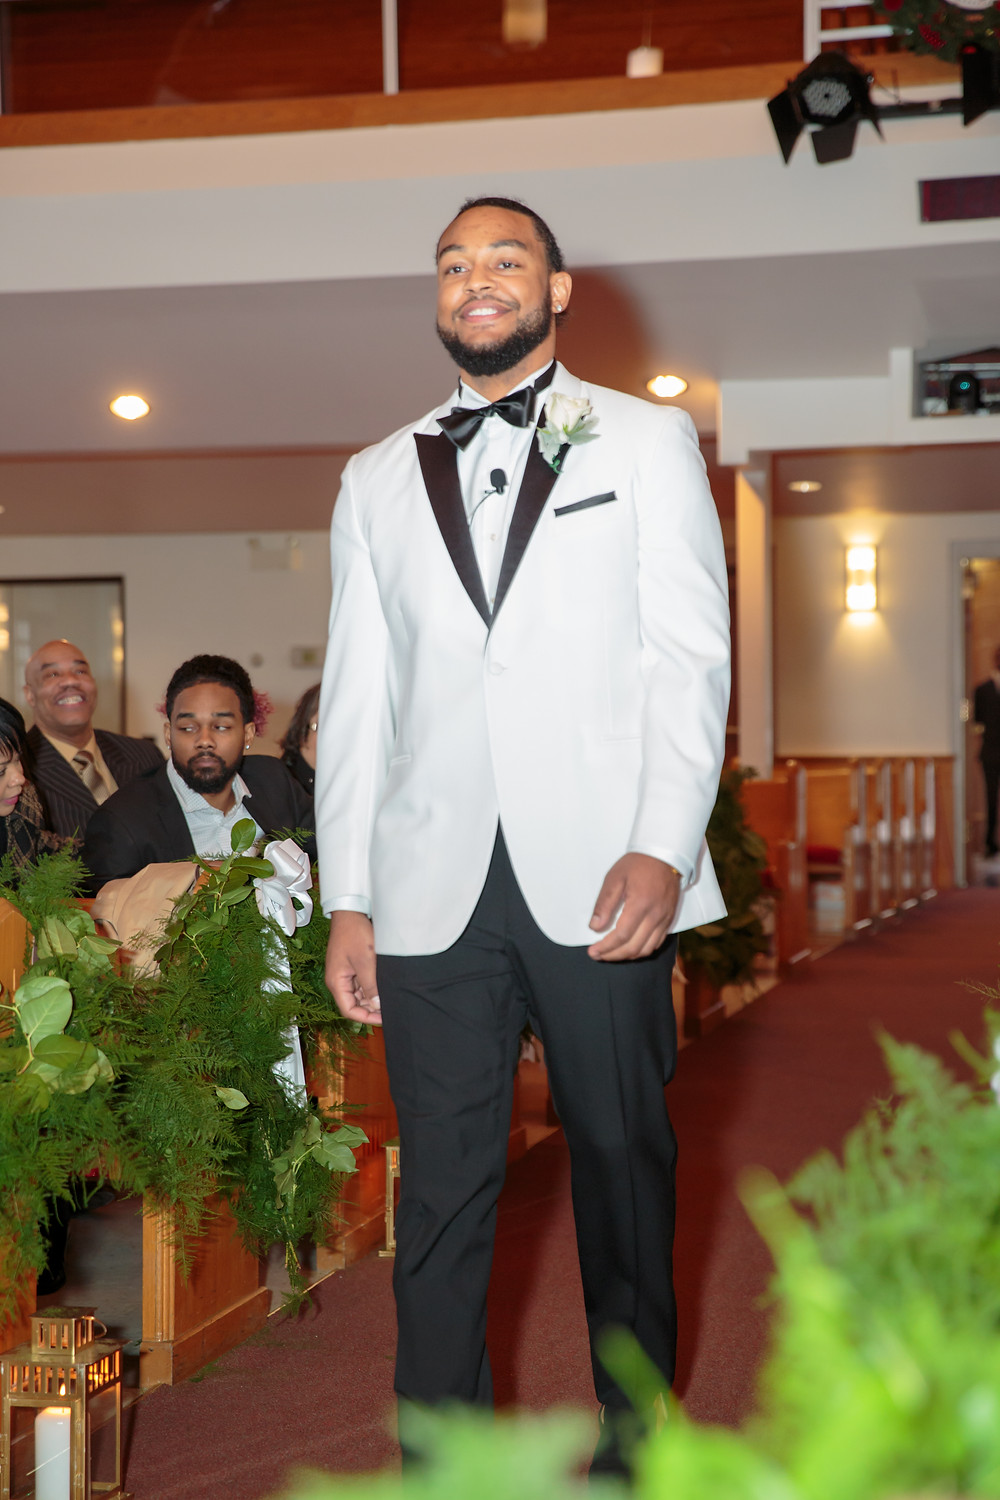 The groom, Shelton, approaching the alter at the Alfred Street Baptist Church in Alexandria Virginia.